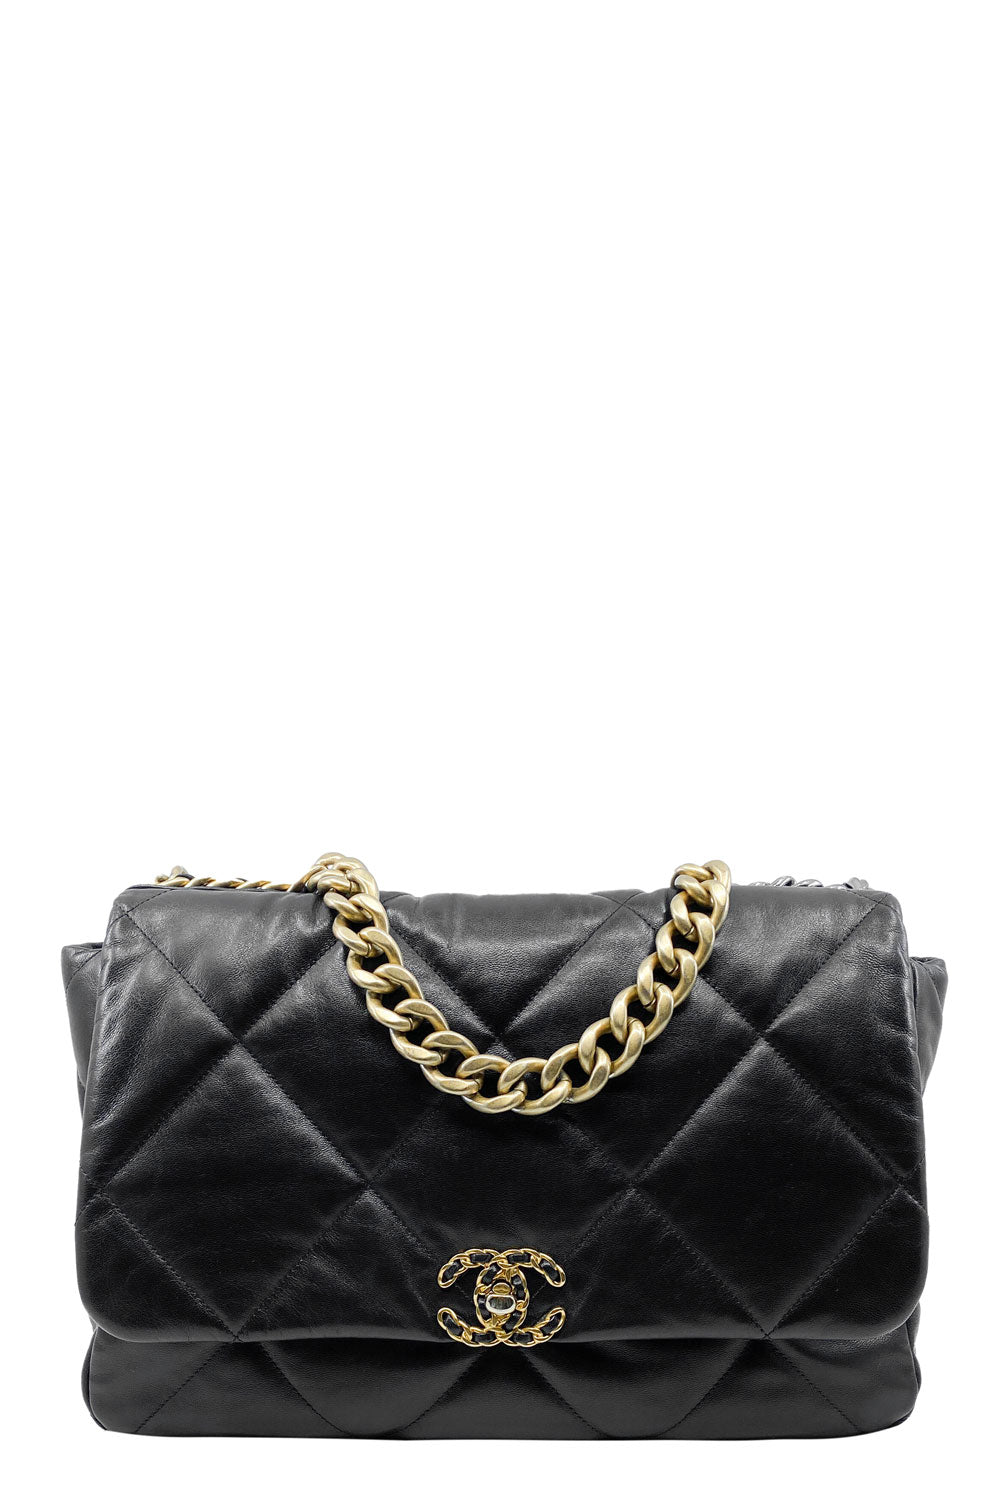 Chanel 19 Large Goatskin Black Frontansicht